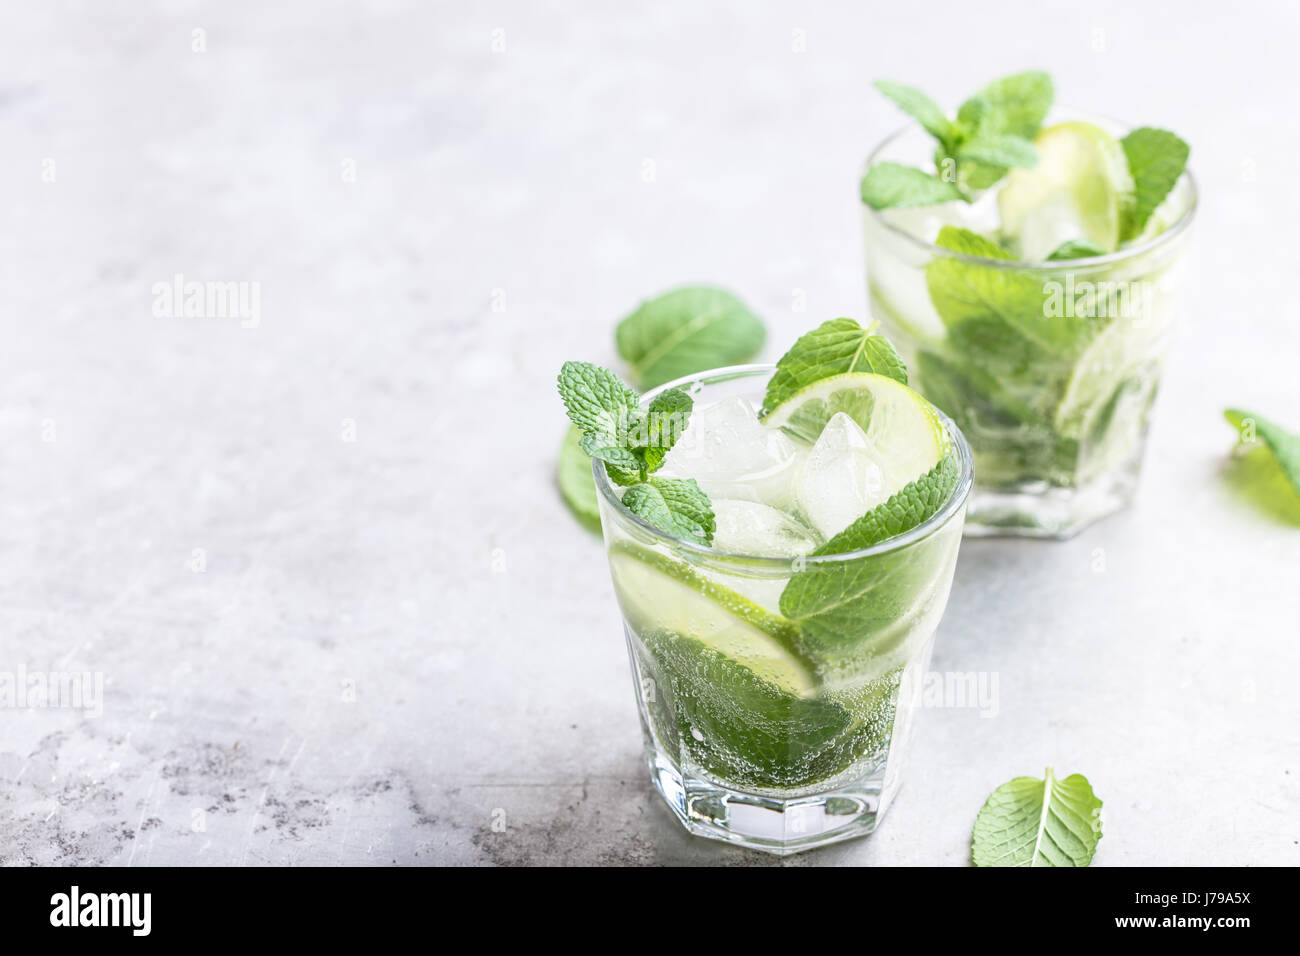 Mojito cocktail on light gray background close up, refreshing summer drink - Stock Image